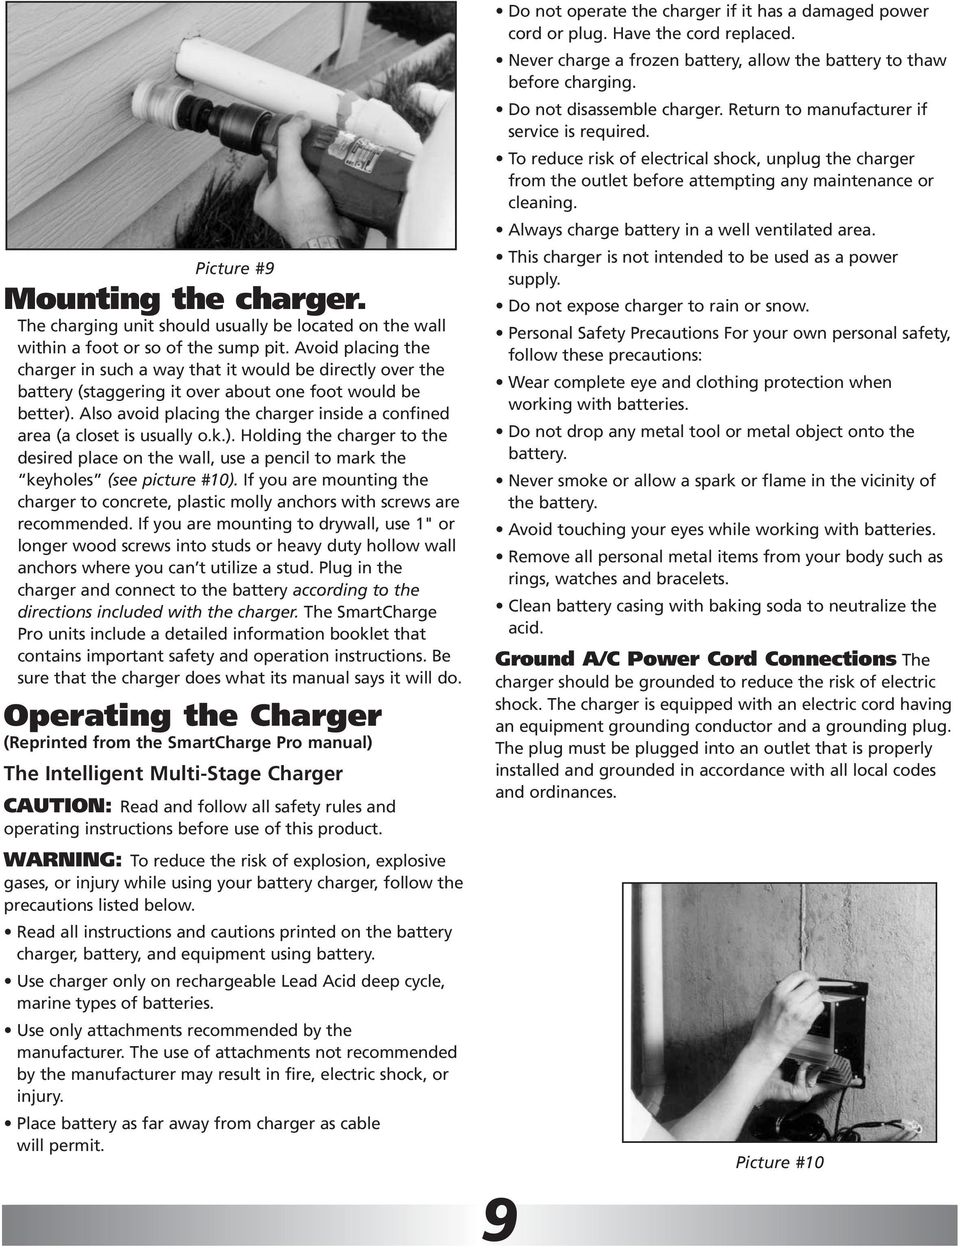 Also avoid placing the charger inside a confined area (a closet is usually o.k.). Holding the charger to the desired place on the wall, use a pencil to mark the keyholes (see picture #10).